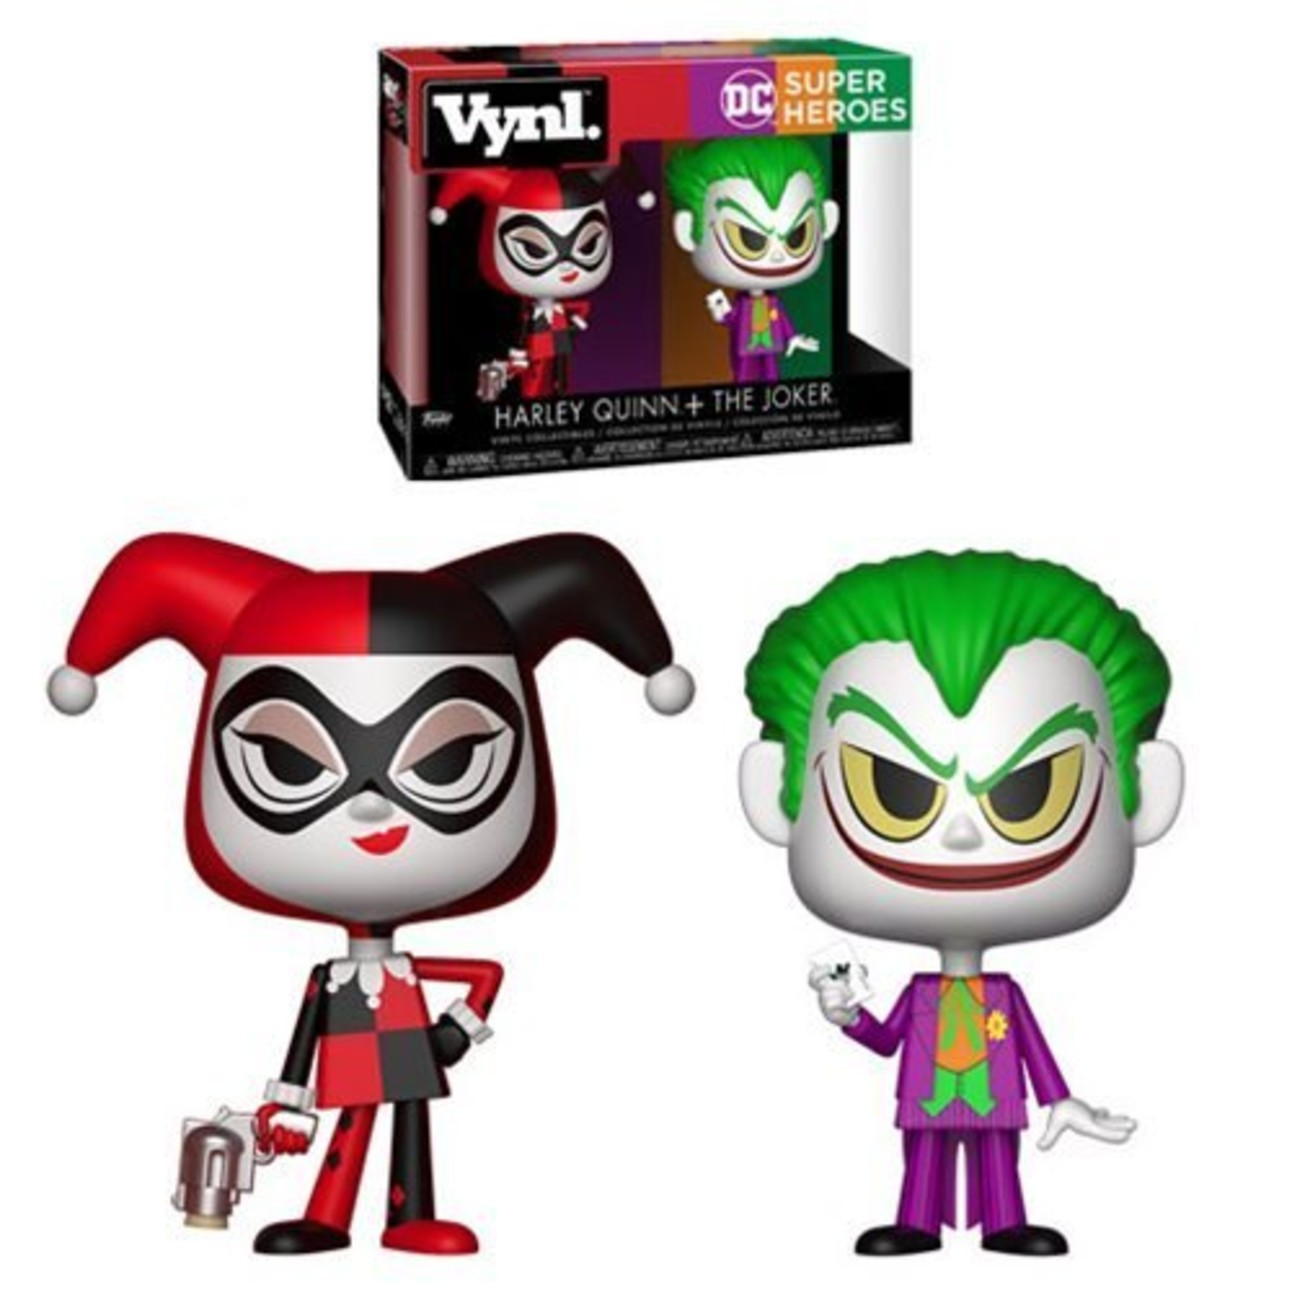 Harley Quinn and Joker Funko Pop